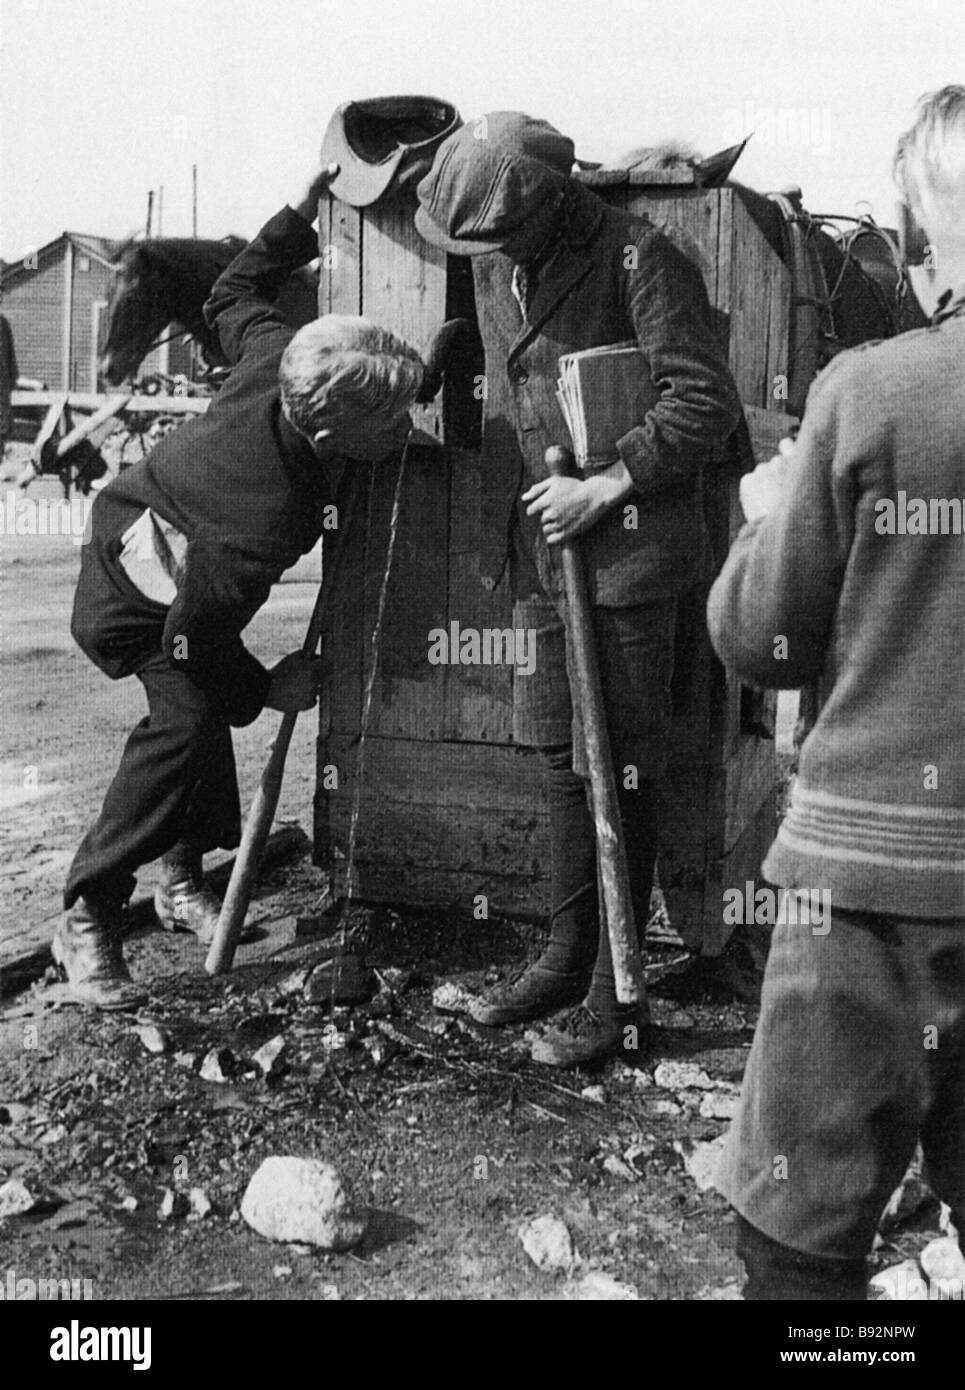 Boys drinking from Helsinki s first street water fountain The photograph is exhibited in the city Water Museum - Stock Image